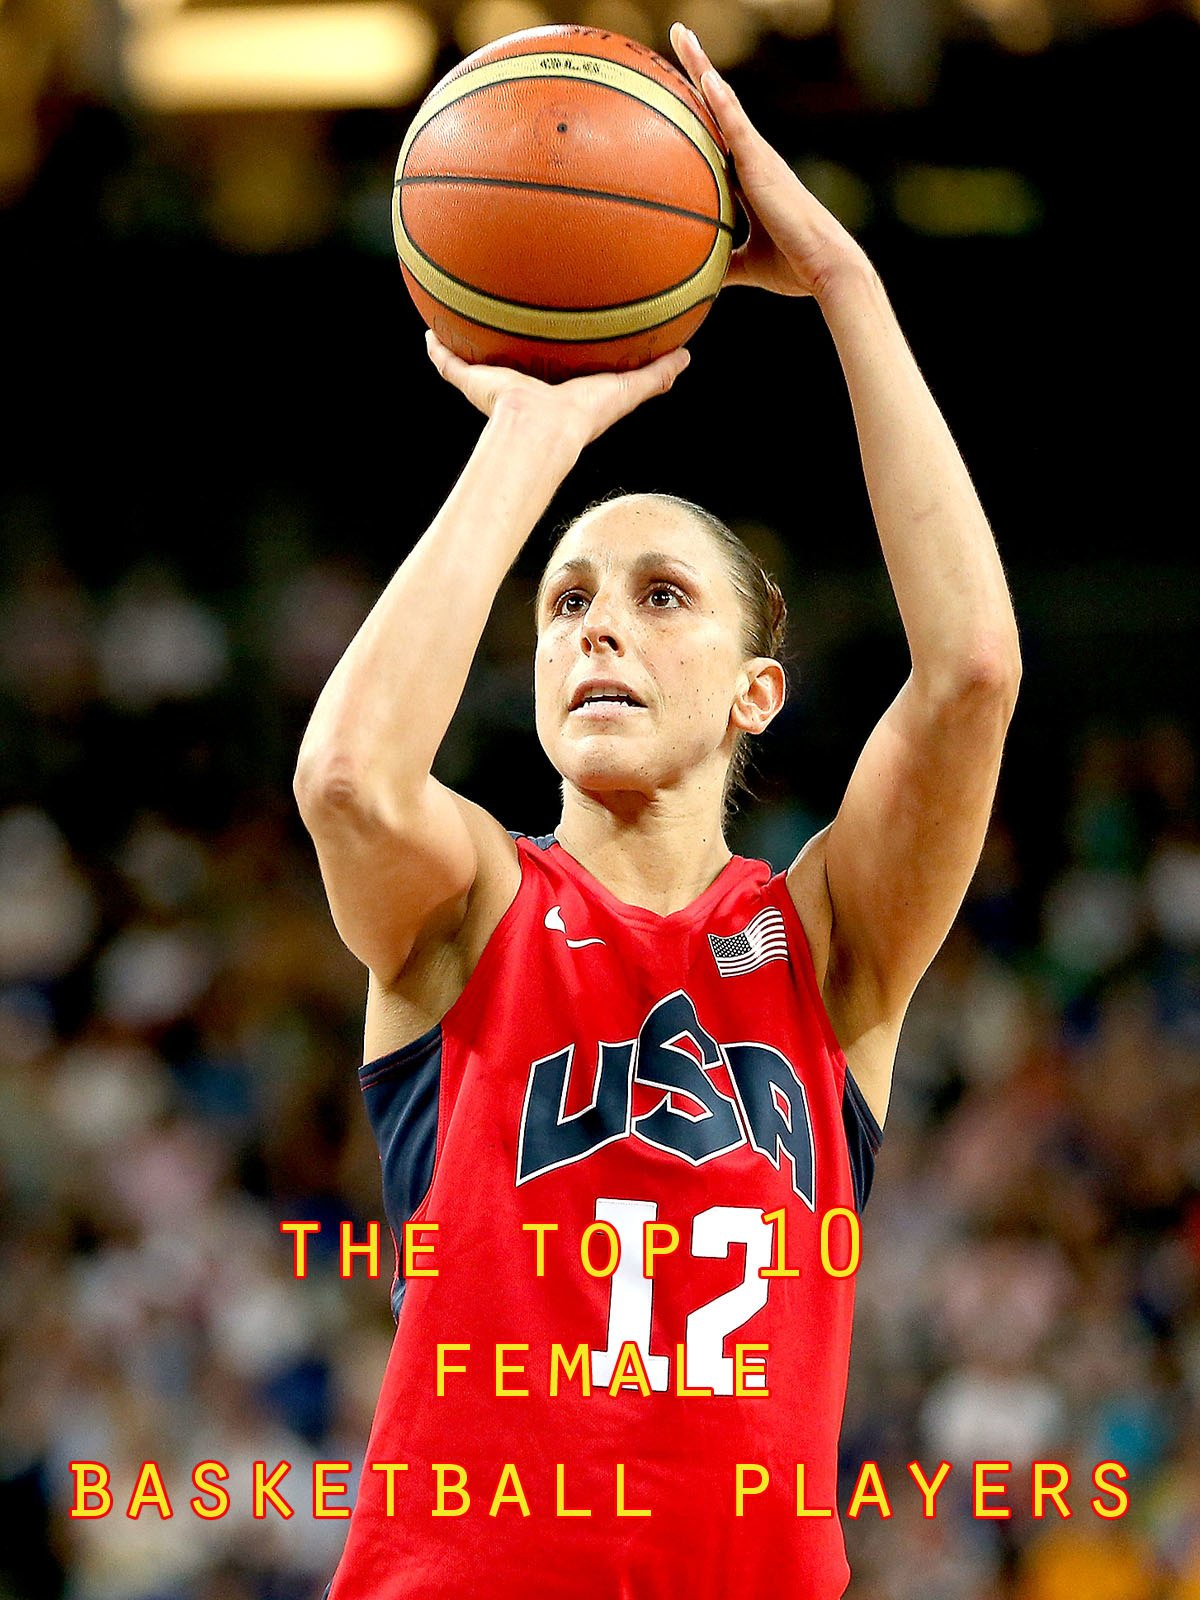 The Top 10 Female Basketball Players on Amazon Prime Video UK